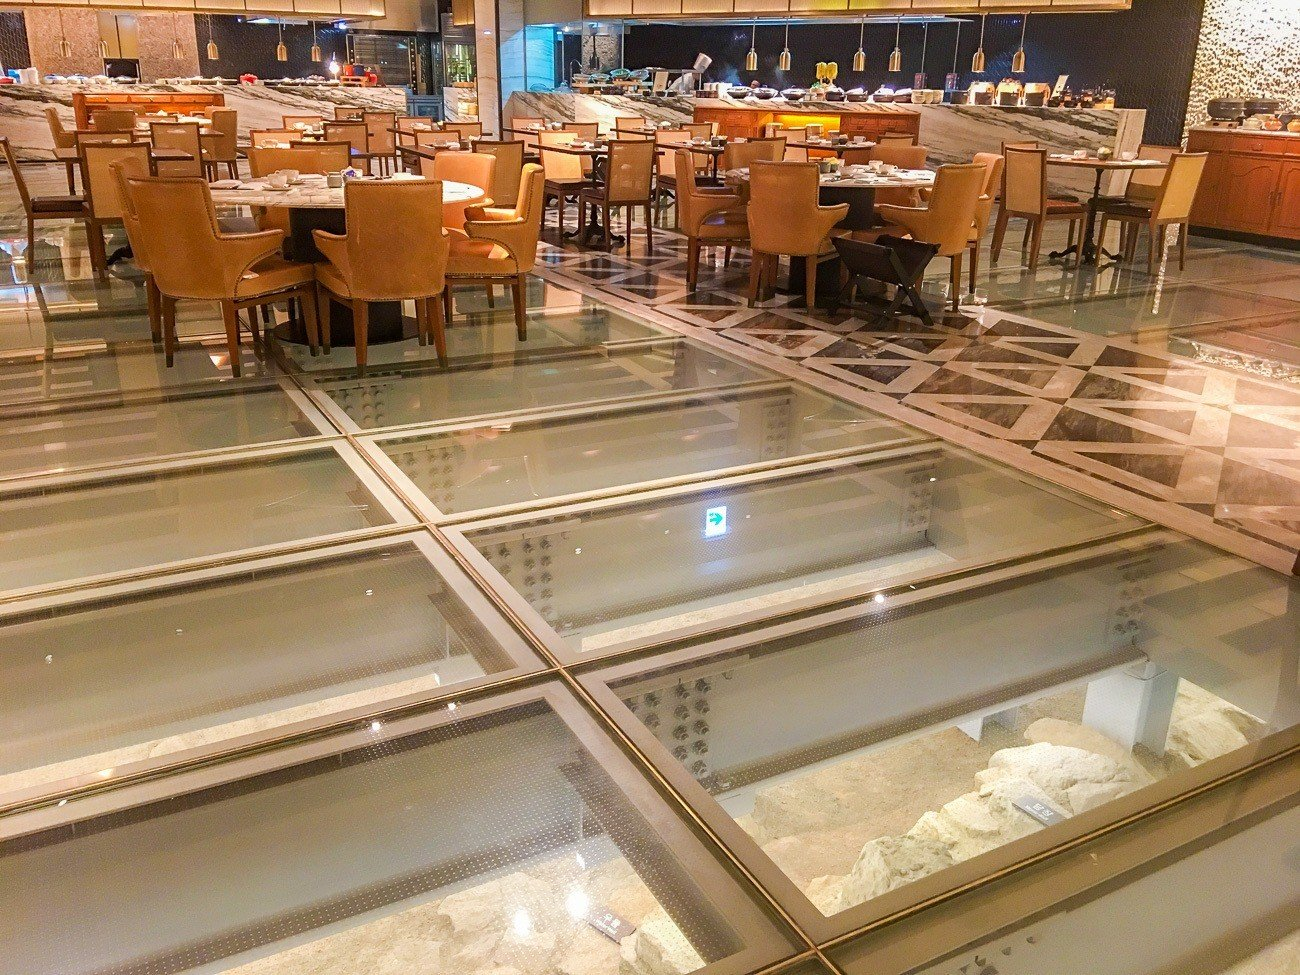 Ruins shown through glass panels in the floor of The Marketplace inside Four Seasons Hotel Seoul.